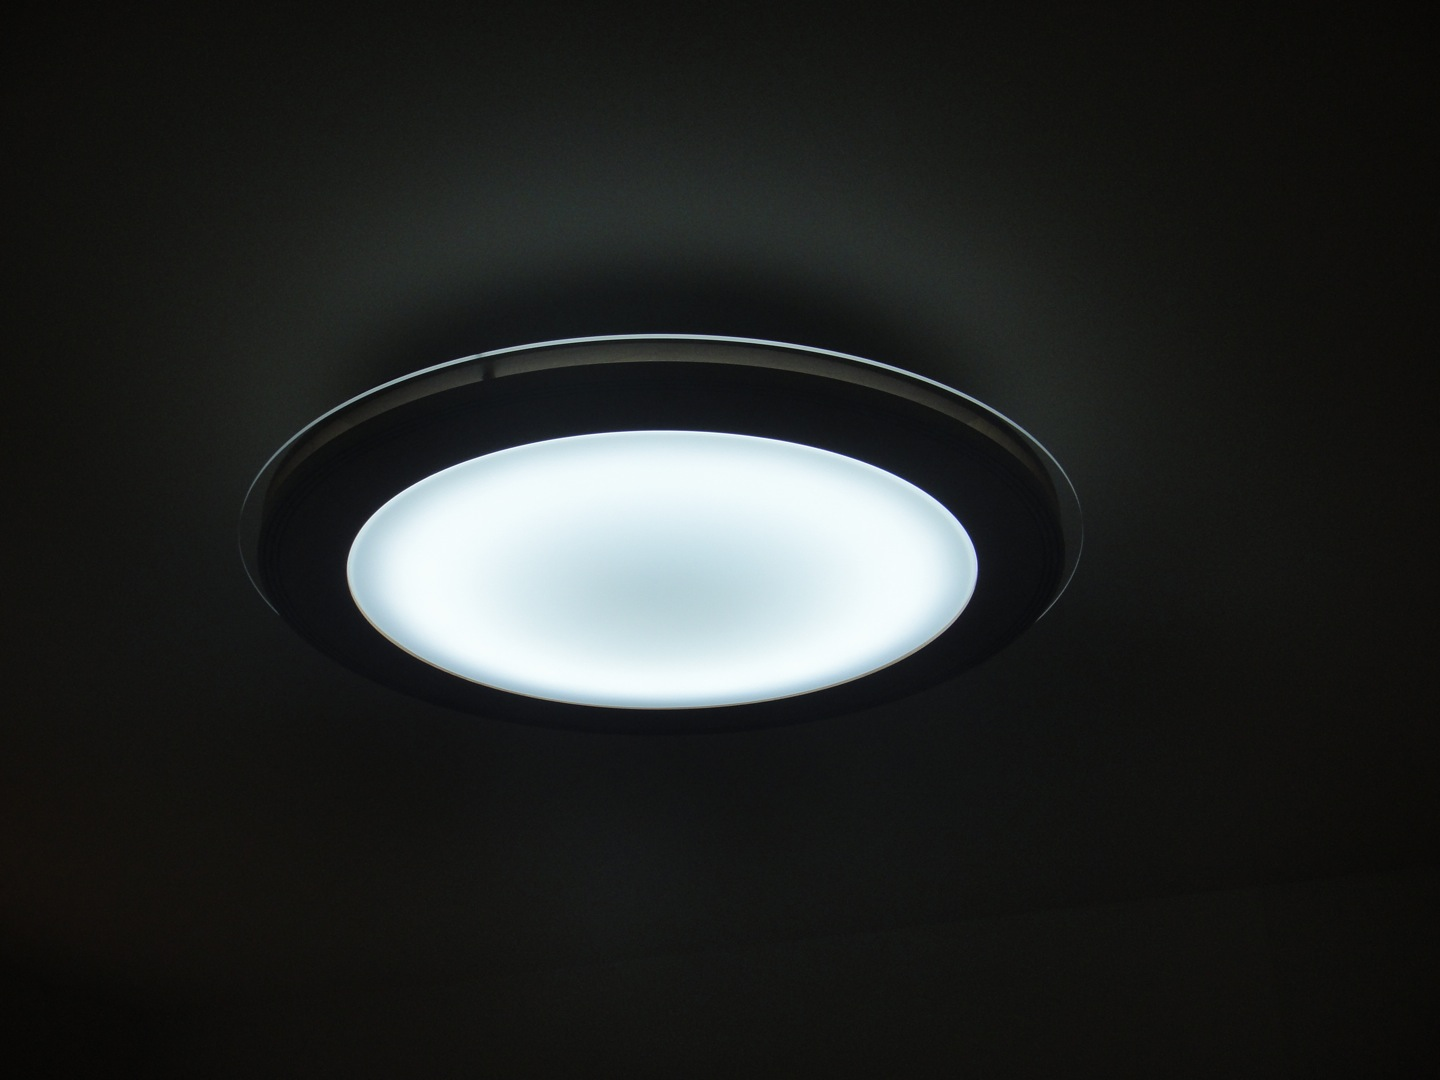 10 facts about ceiling light speakers warisan lighting for Pictures of ceiling lights